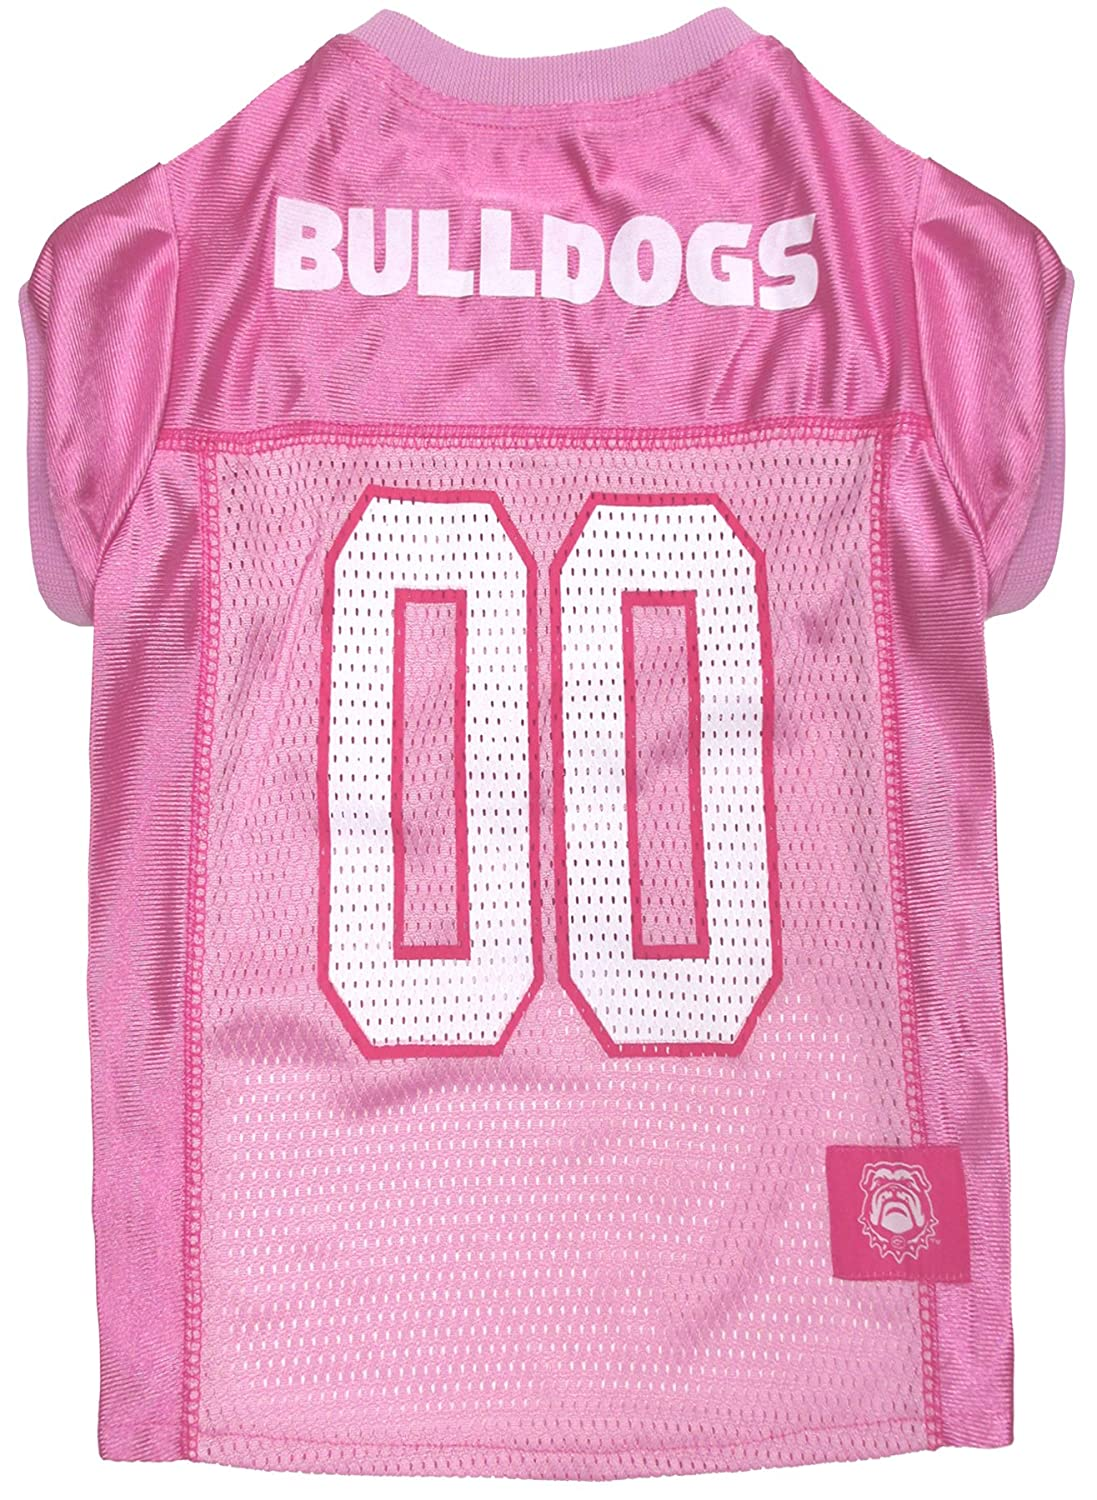 NCAA Dog Pink Football Jersey Pet Pink Sports Outfit